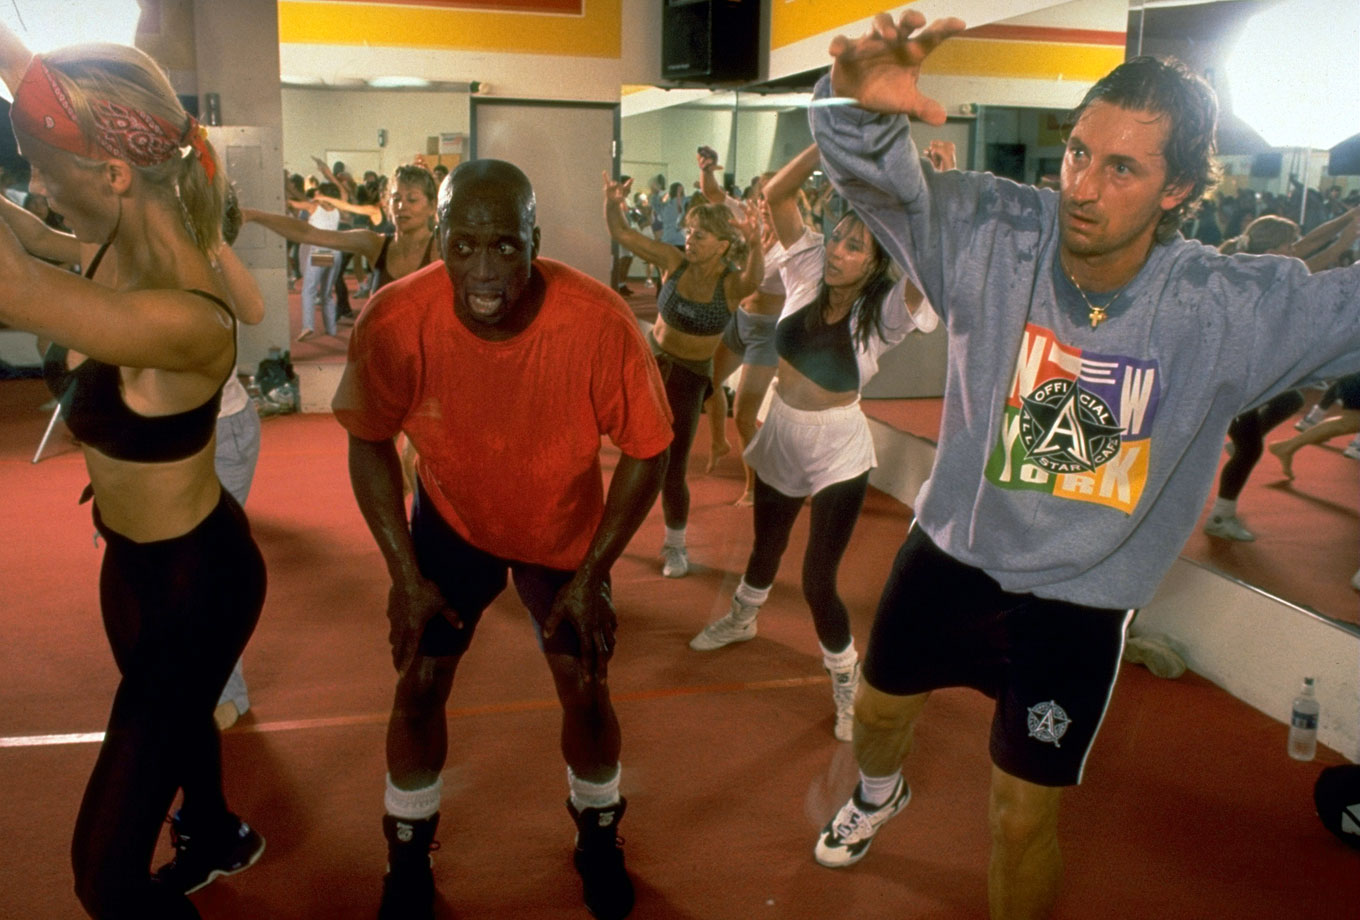 Wayne Gretzky breaks quite the sweat in an aerobics class taught by Billy Blanks in 1995.